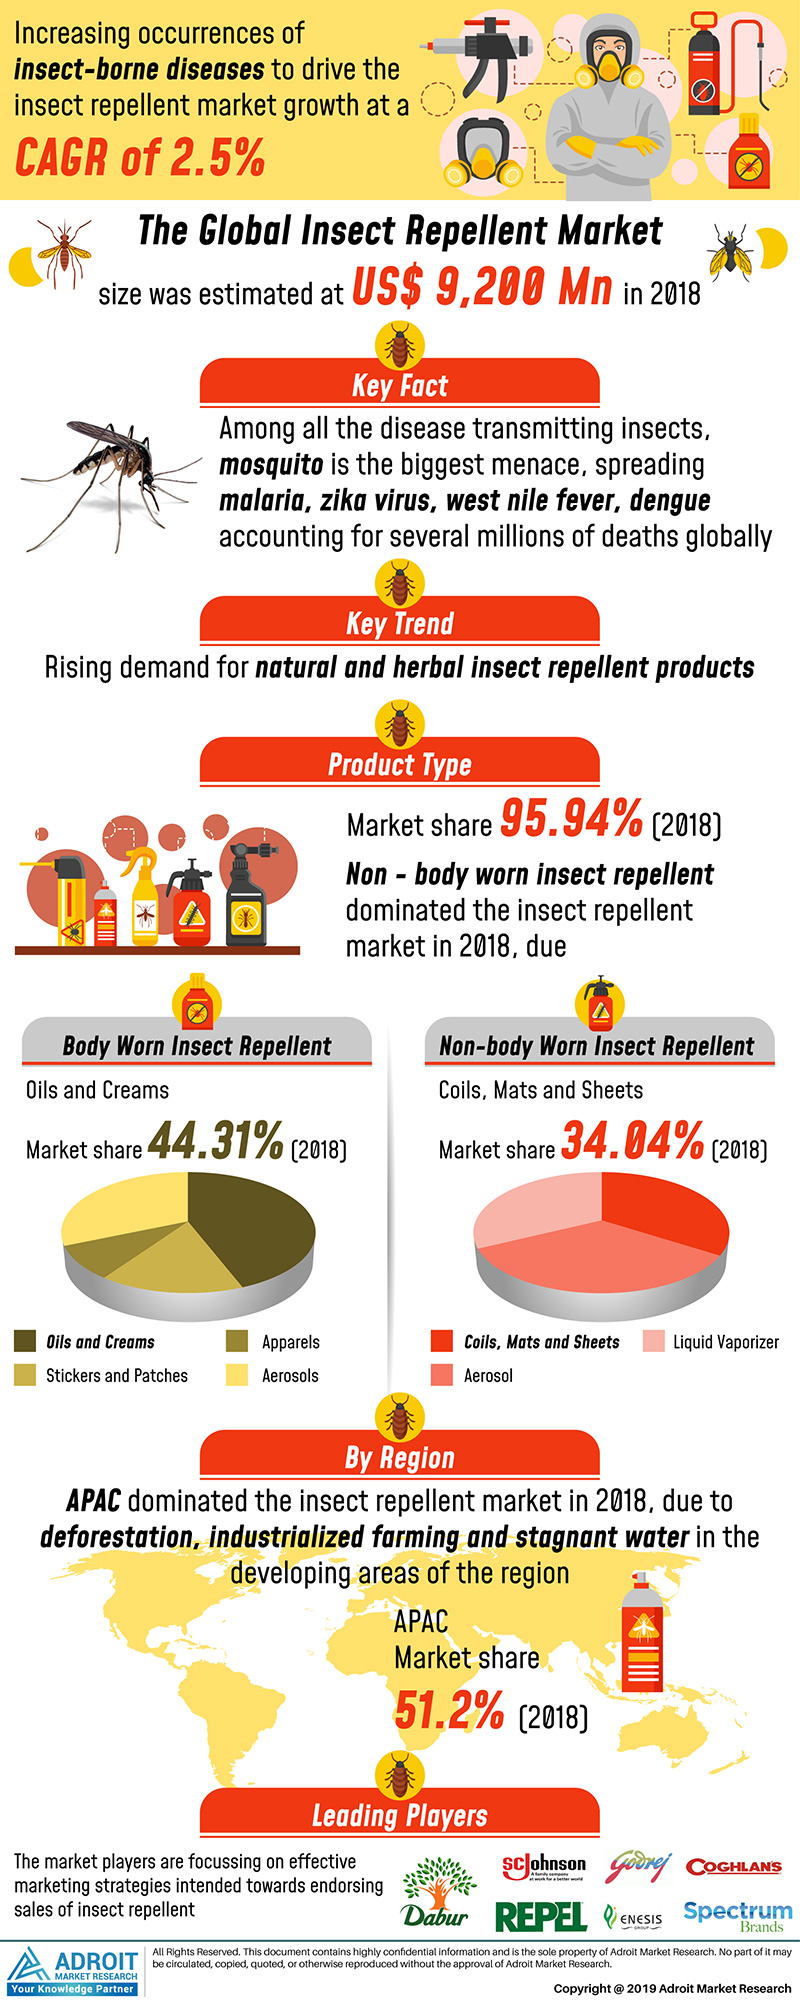 Global Insect Repellent Market Size 2017 By Type, Region and Forecast 2018 to 2025